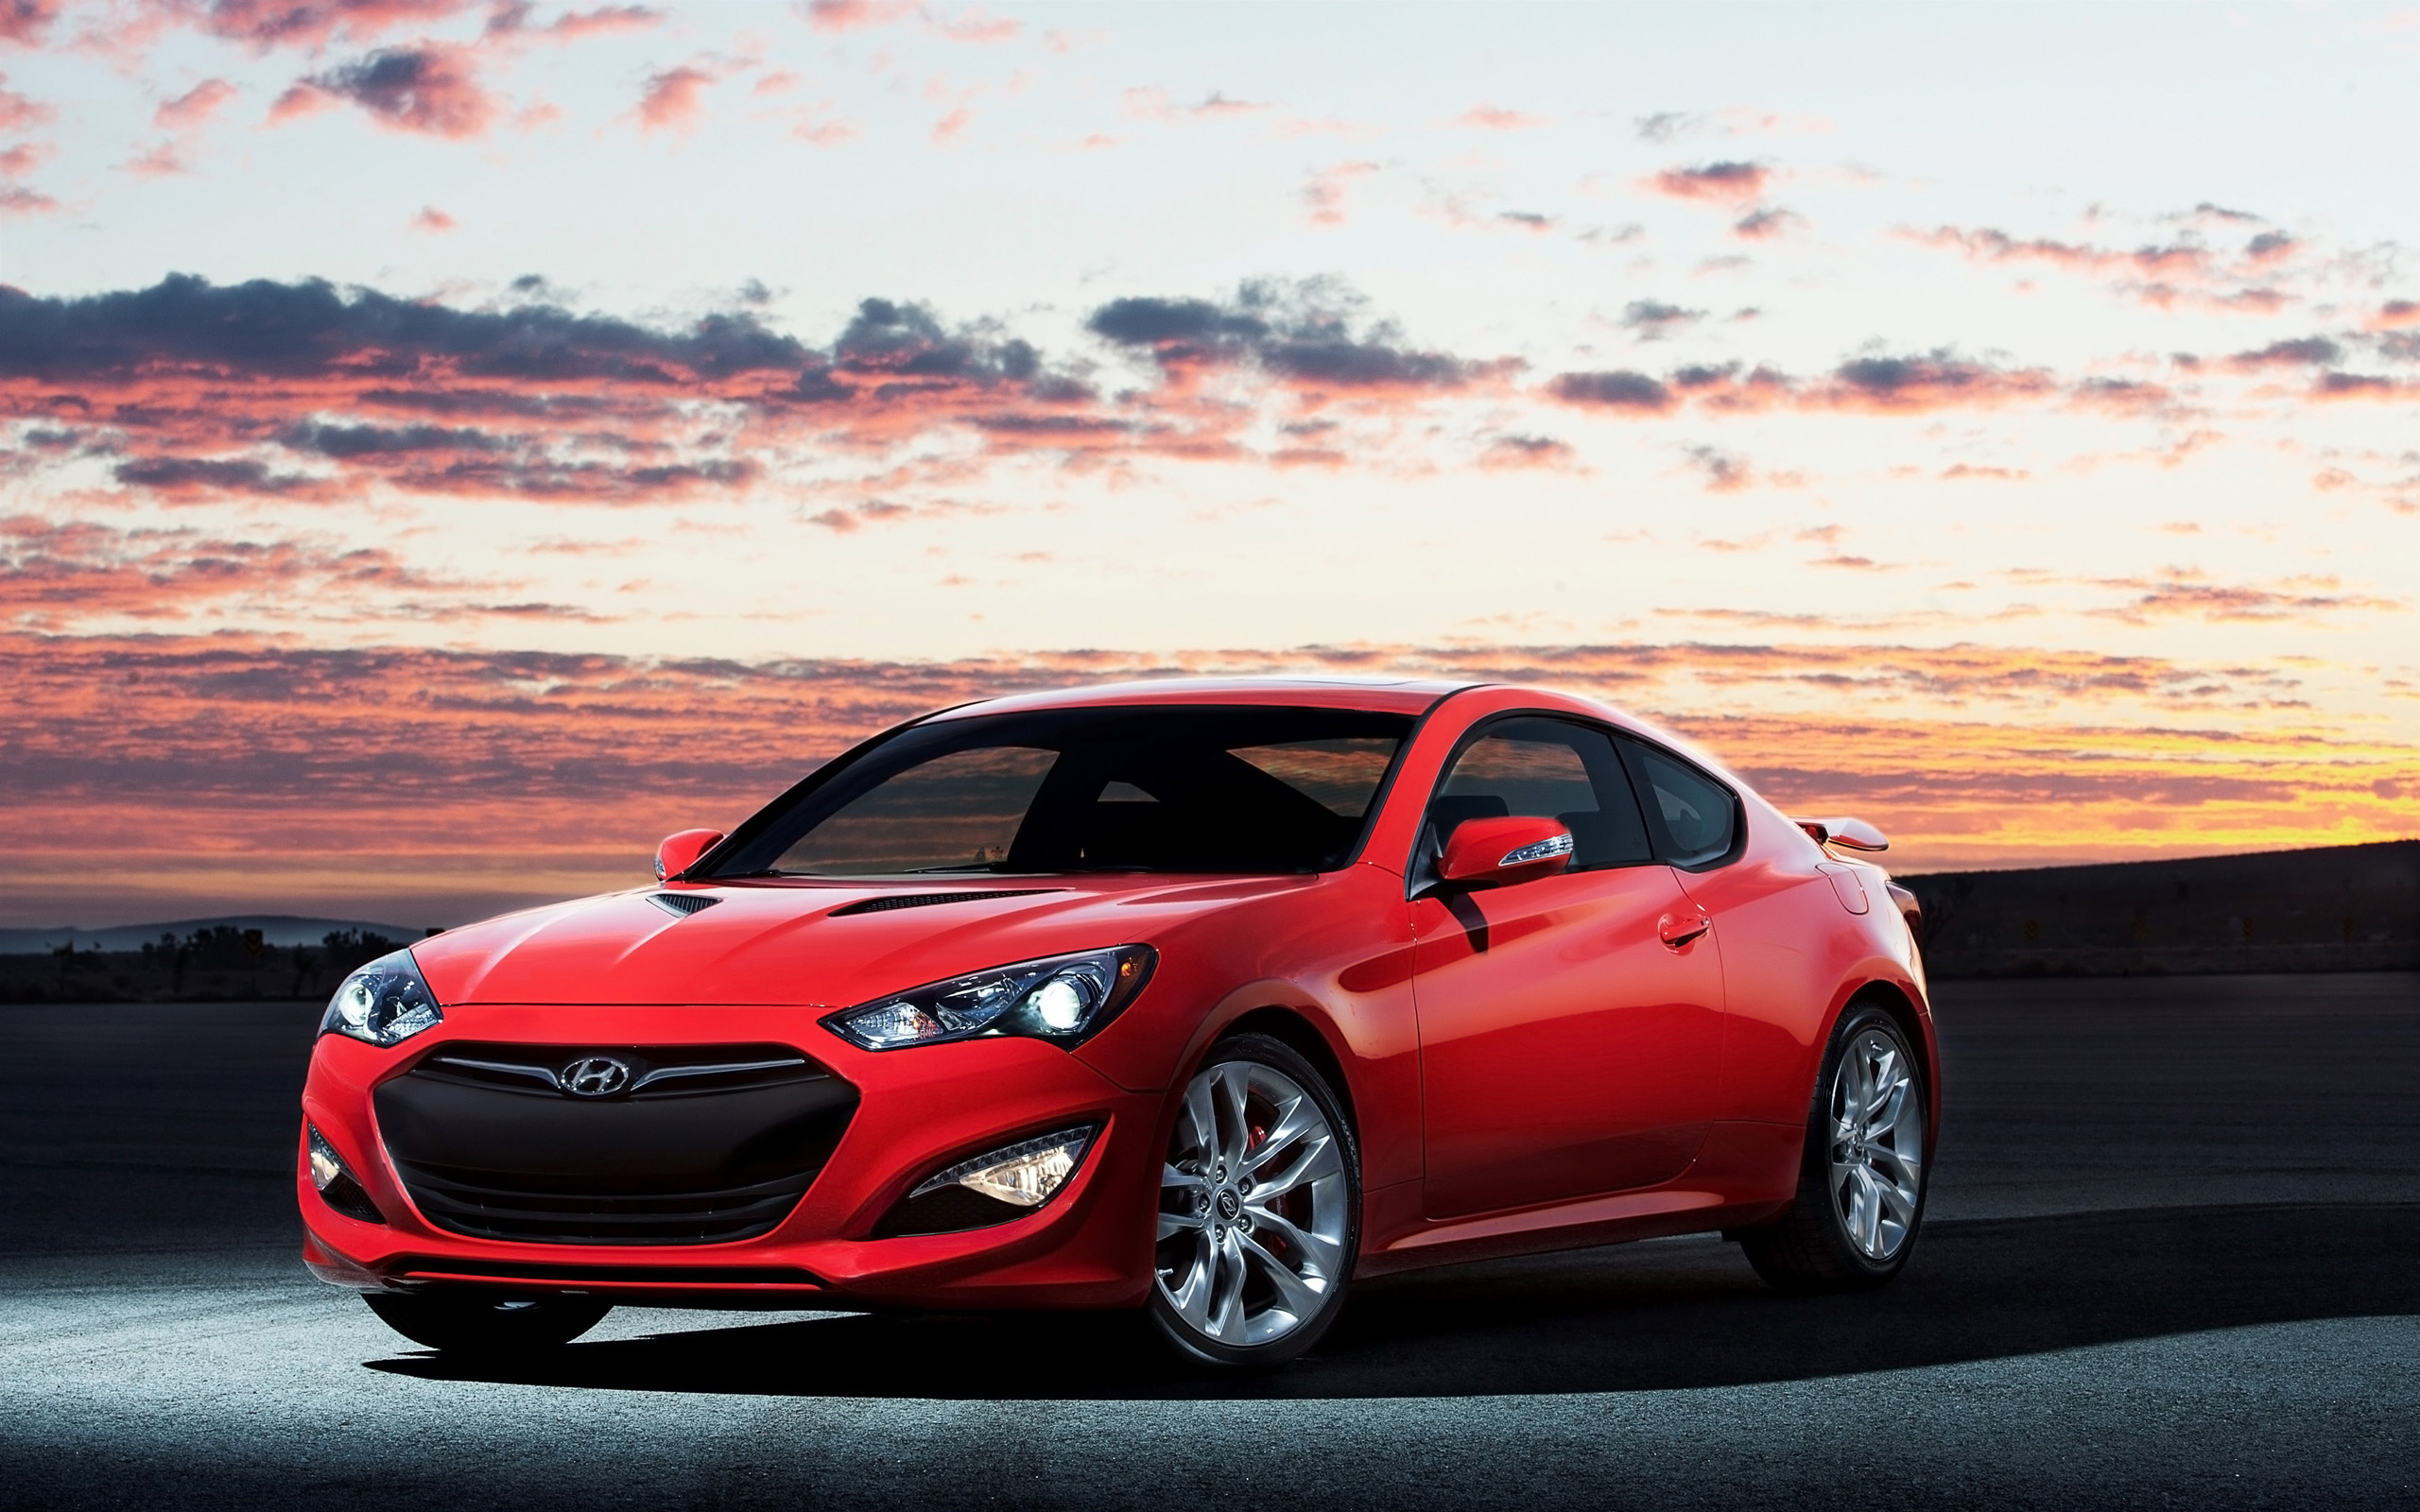 2015 Hyundai Genesis Coupe Wallpaper Hd Car Wallpapers Id 4888